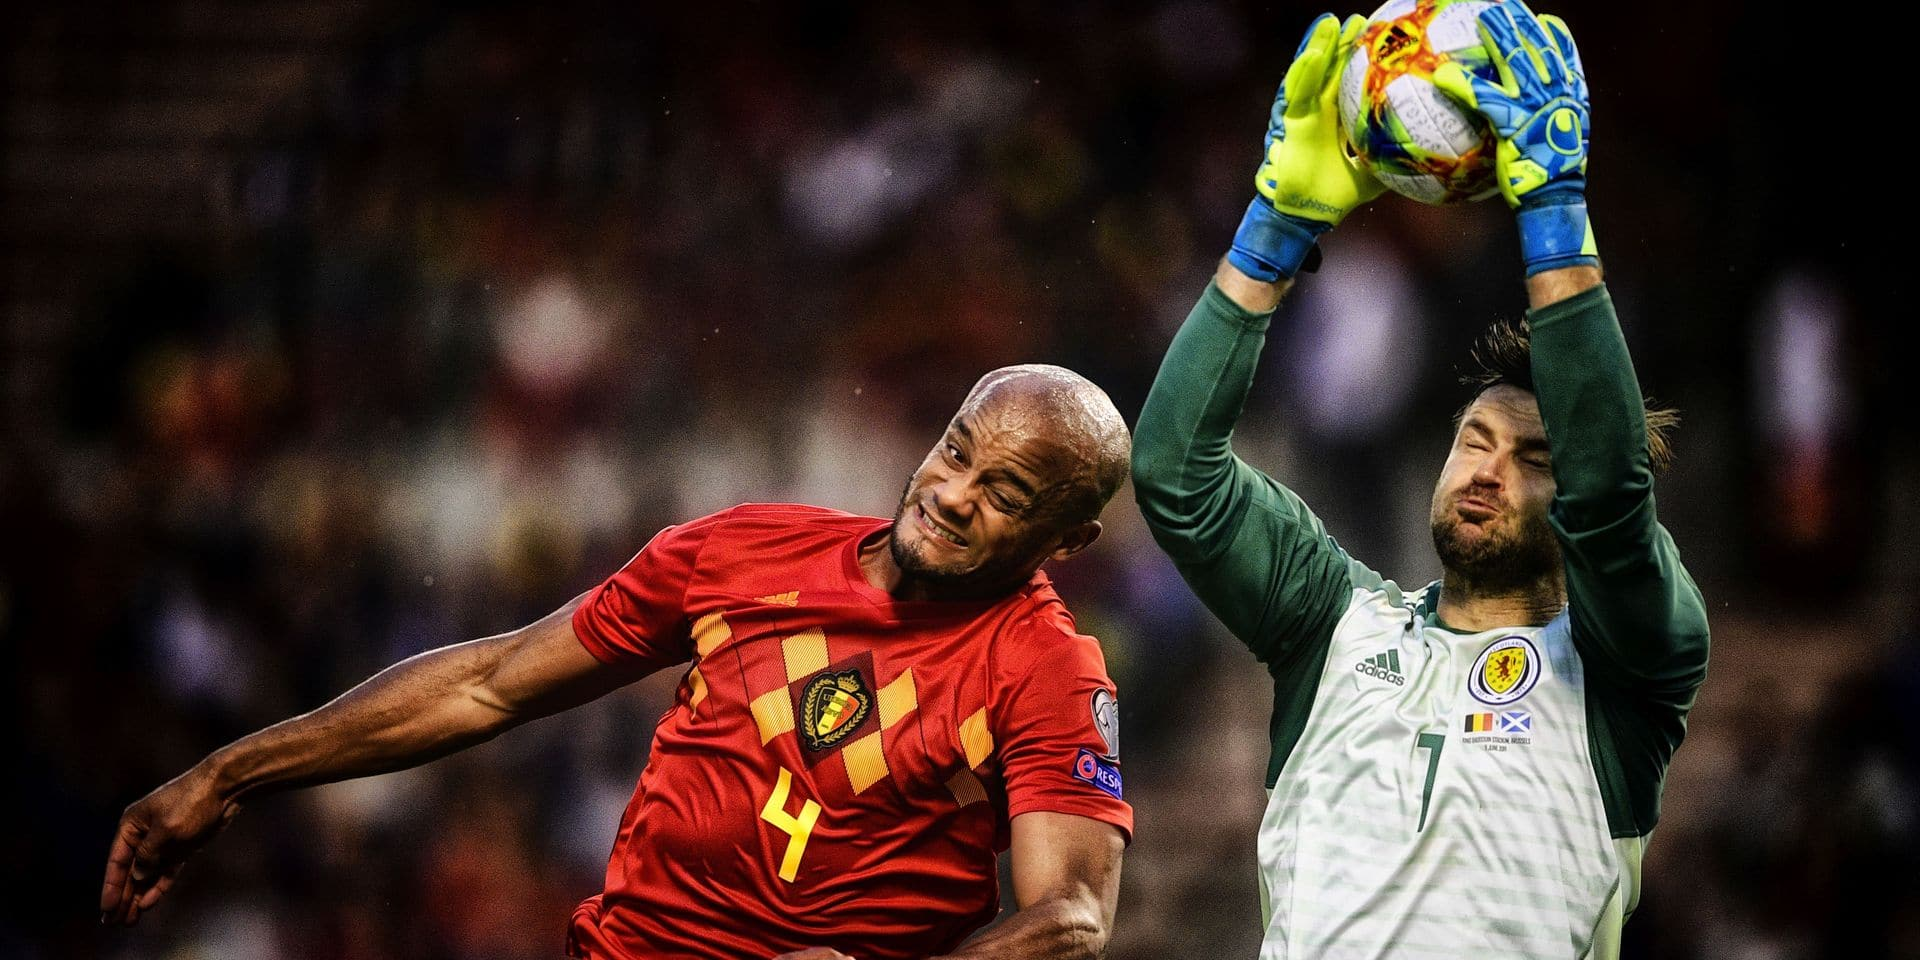 Belgium's Vincent Kompany and Scotland's goalkeeper David Marshall fight for the ball during a soccer game between Belgian national team the Red Devils and Scotland, Tuesday 11 June 2019 in Brussels, an UEFA Euro 2020 qualification game. BELGA PHOTO YORICK JANSENS